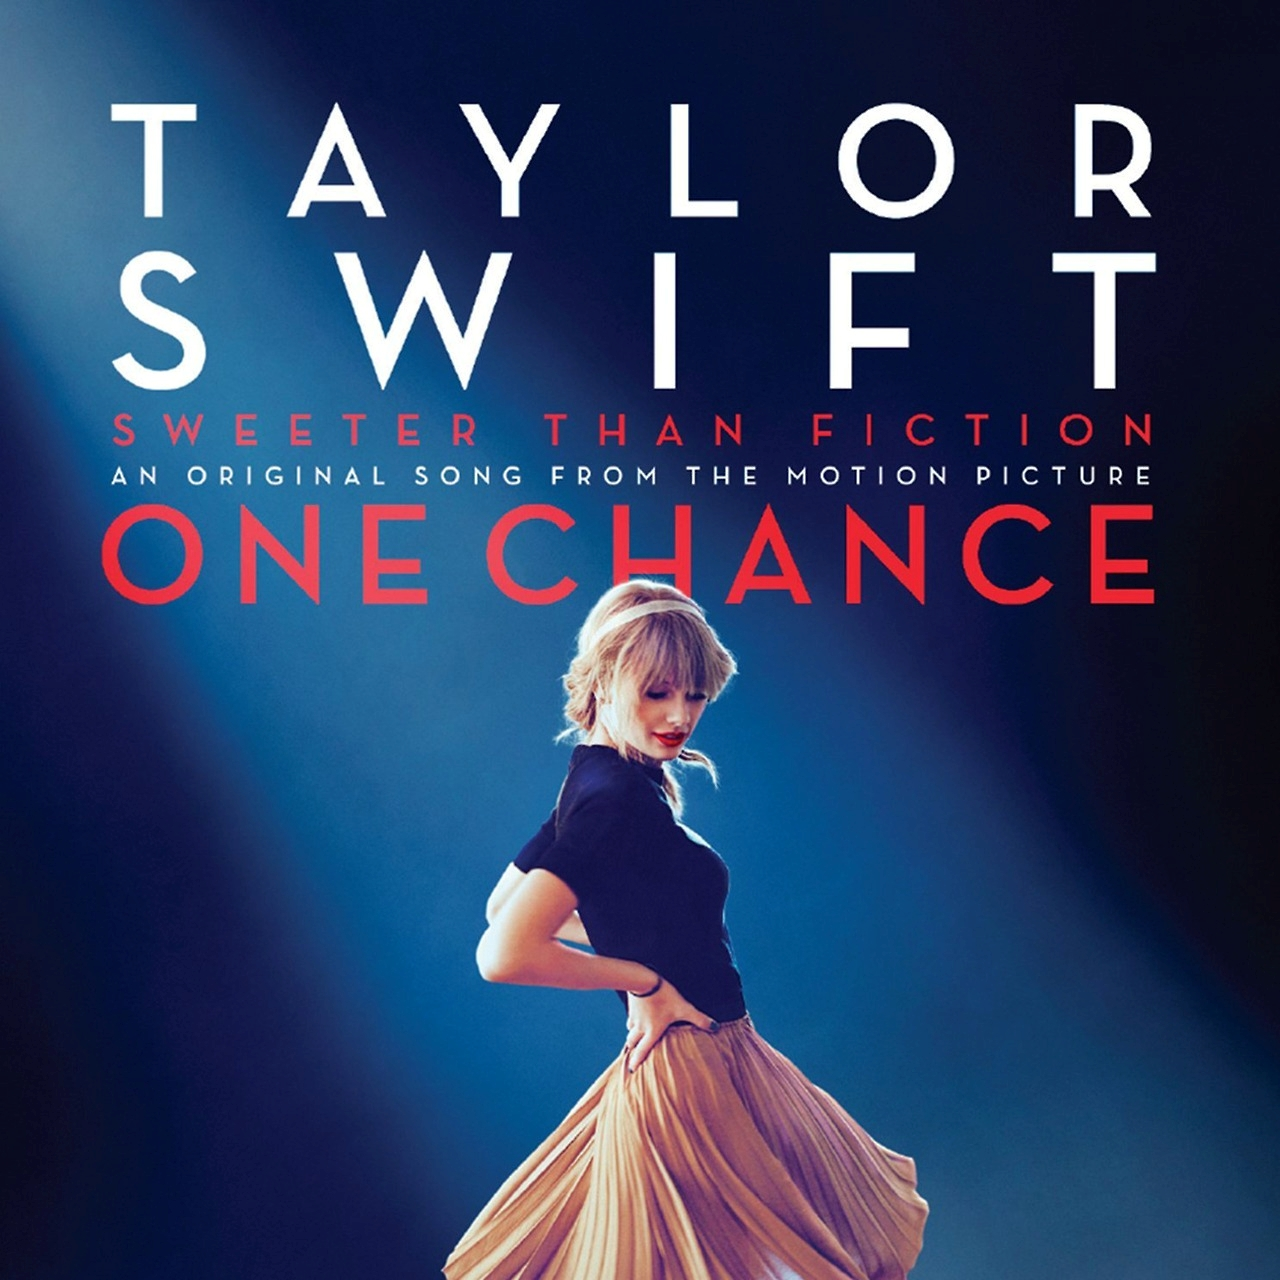 Sweeter Than Fiction by Taylor Swift (Big Machine Records, 2013)